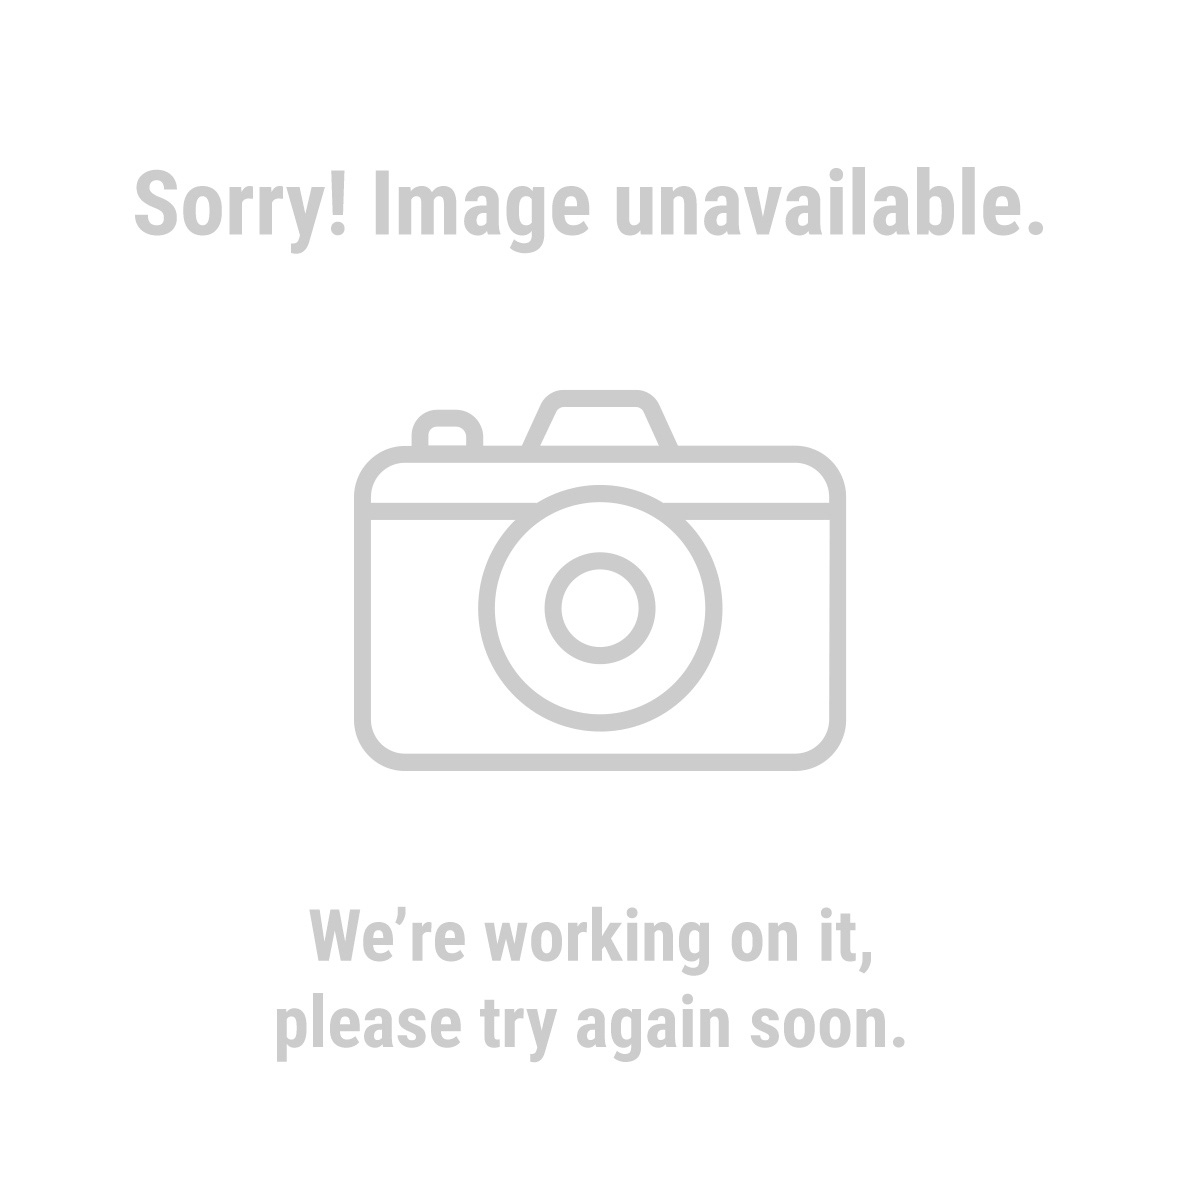 HFT 60460 19 ft. x 29 ft. 4 in. Green/Farm All Purpose/Weather Resistant Tarp